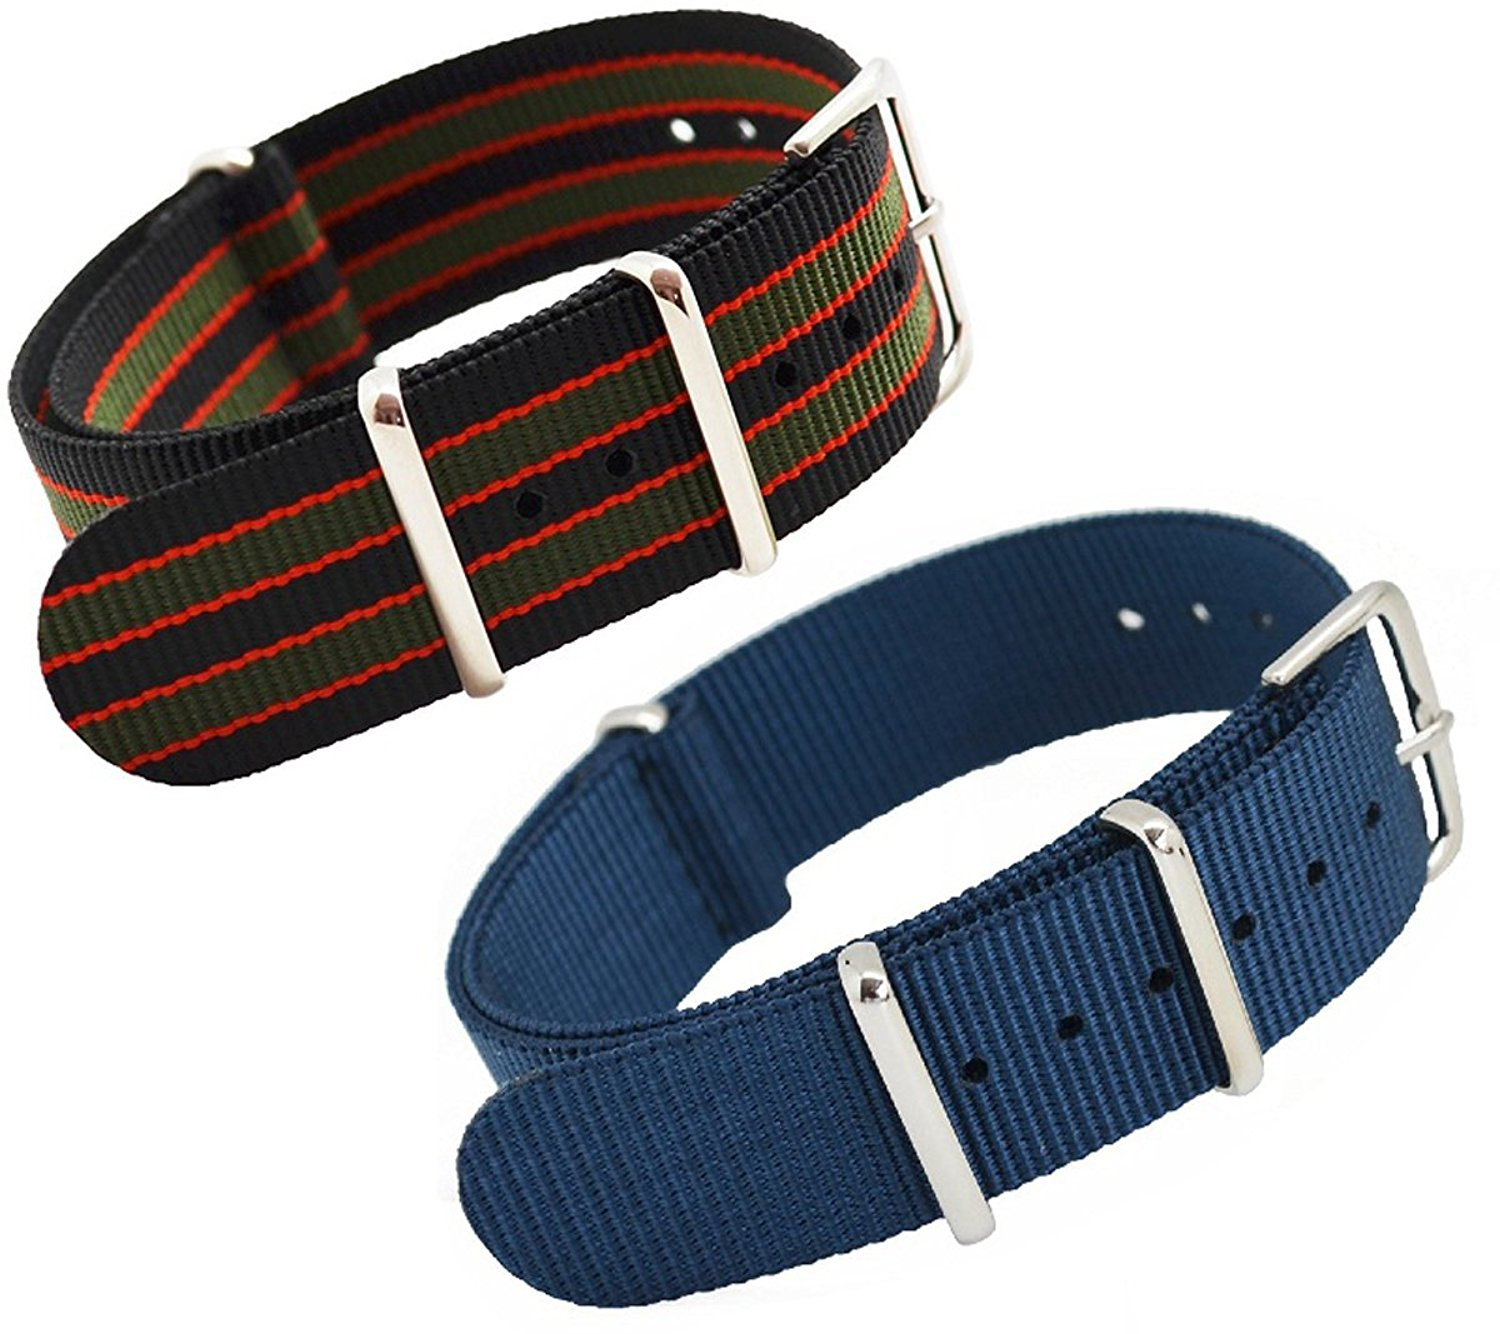 37f37bc7336 navy blue Black Orange Army Green   MetaStrap 20mm Nylon Watch Band NATO  Strap  Amazon.in  Beauty